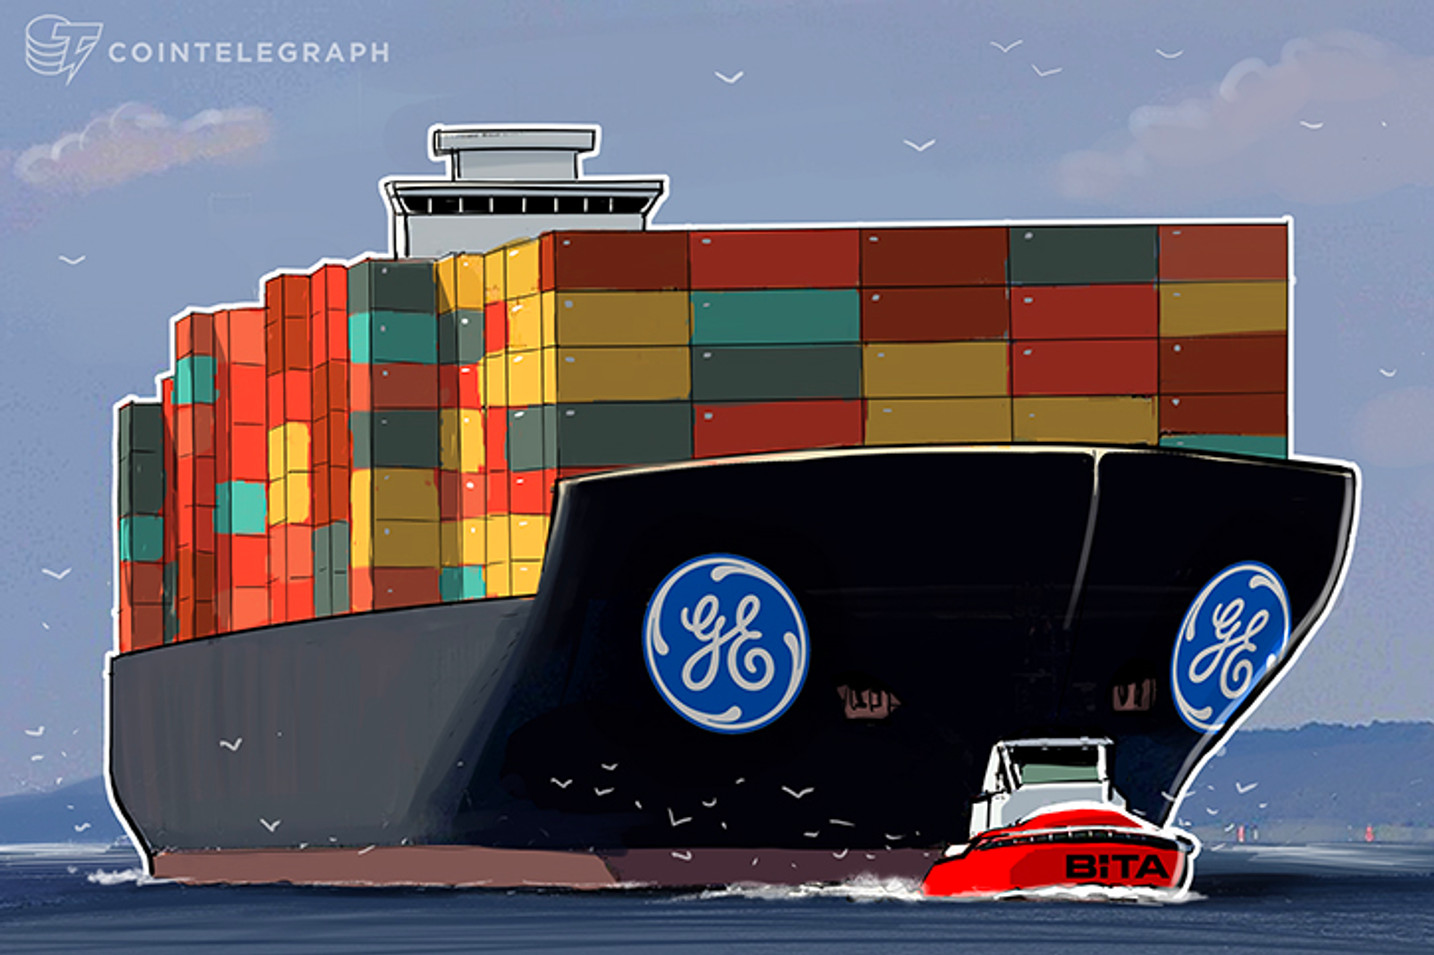 GE Transportation se une a la Global Blockchain Trade Association